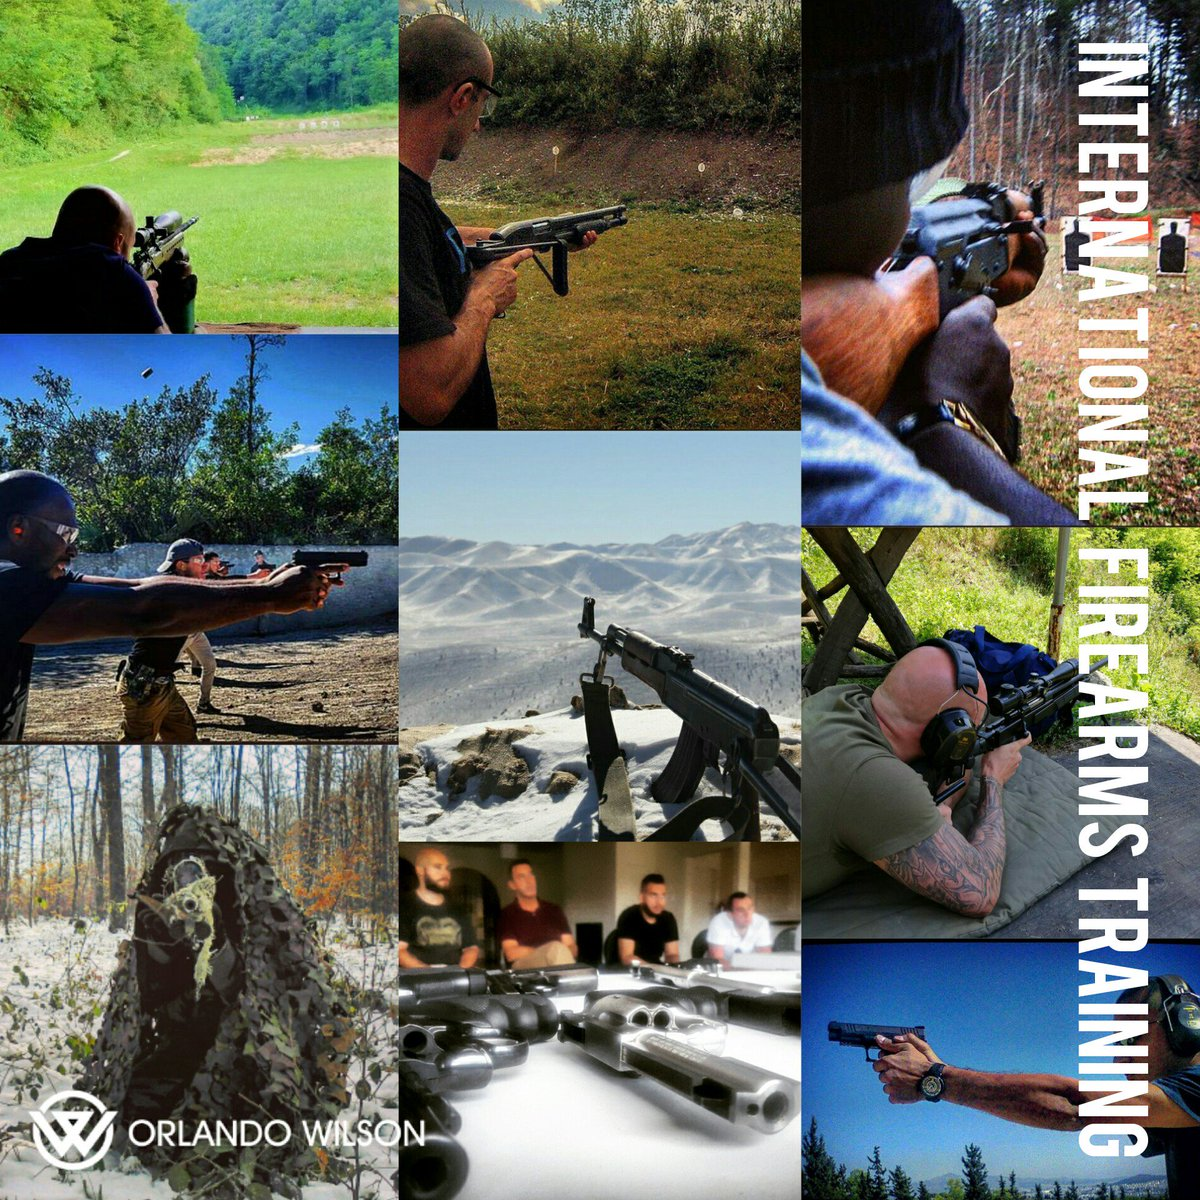 International Firearms Training Services We run courses in Europe, US and Middle East and can customize courses for our client's requirements, or send instructors to their locations. Info @ http://www.risks-incorporated.com   #guns #shooting #events #eventplanner #firearms #adventure